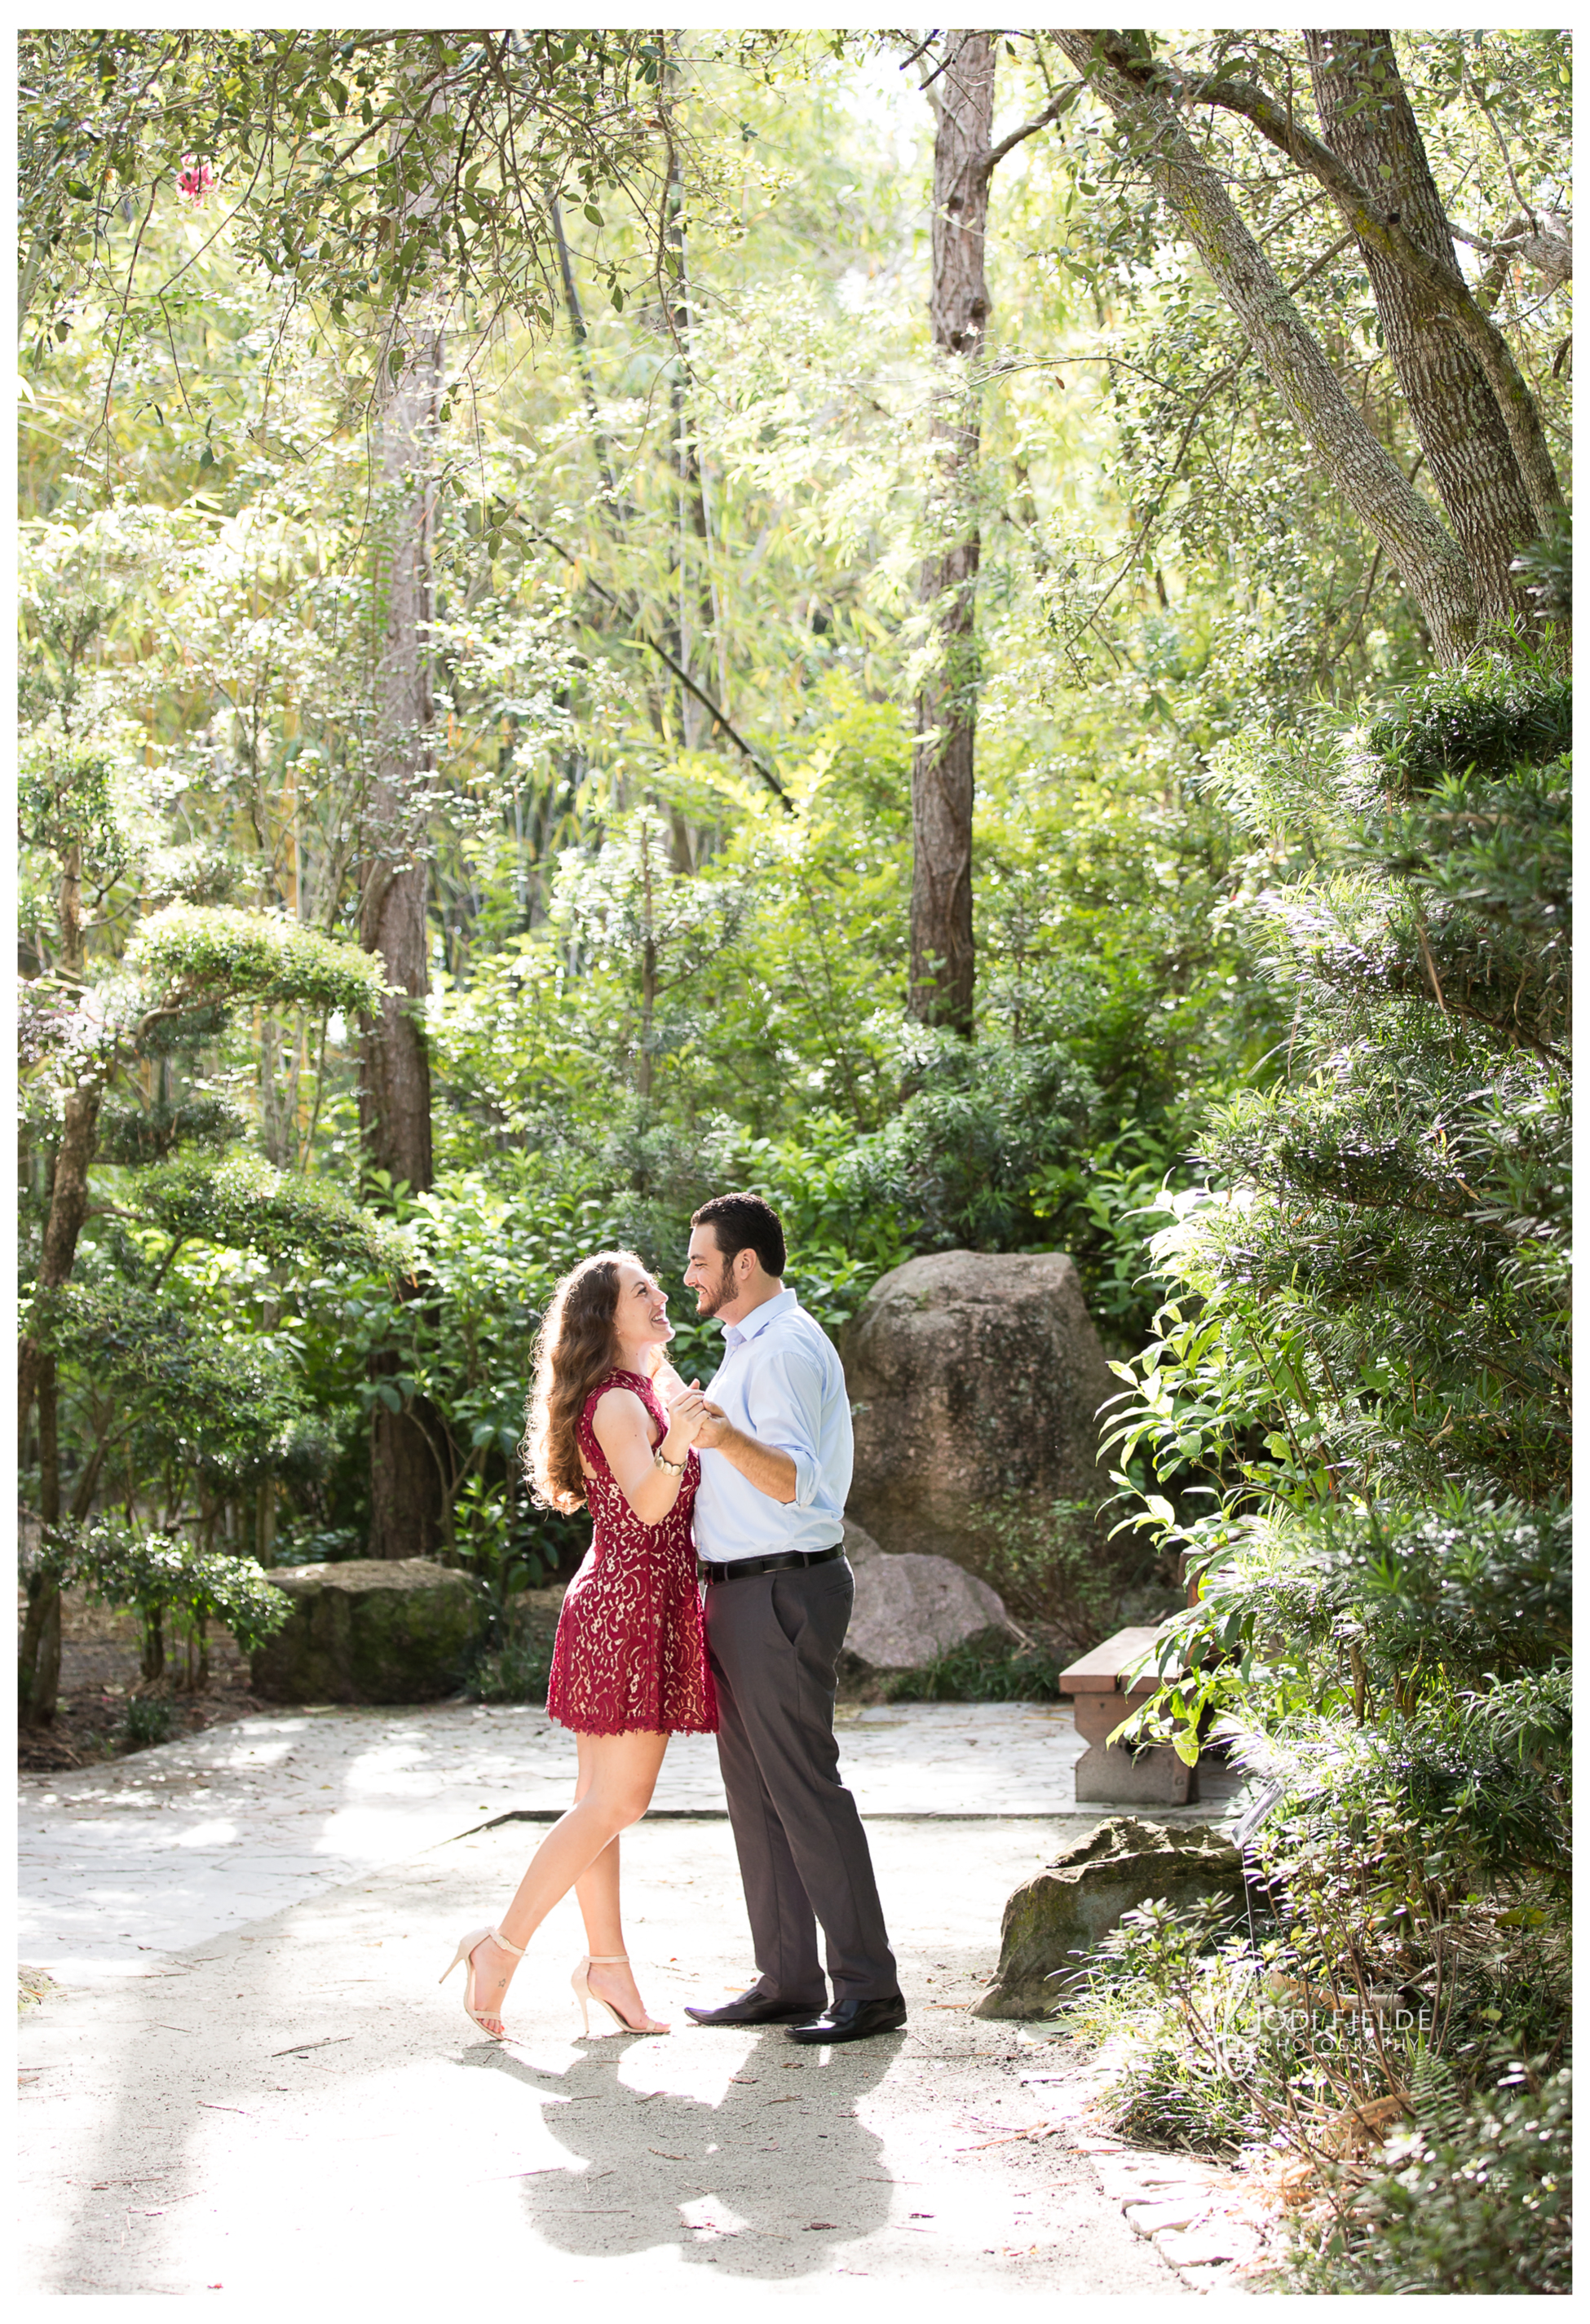 Morikami_Museum_Gardens_Delray_Beach_Engagement_Heather_and Doug_8.jpg